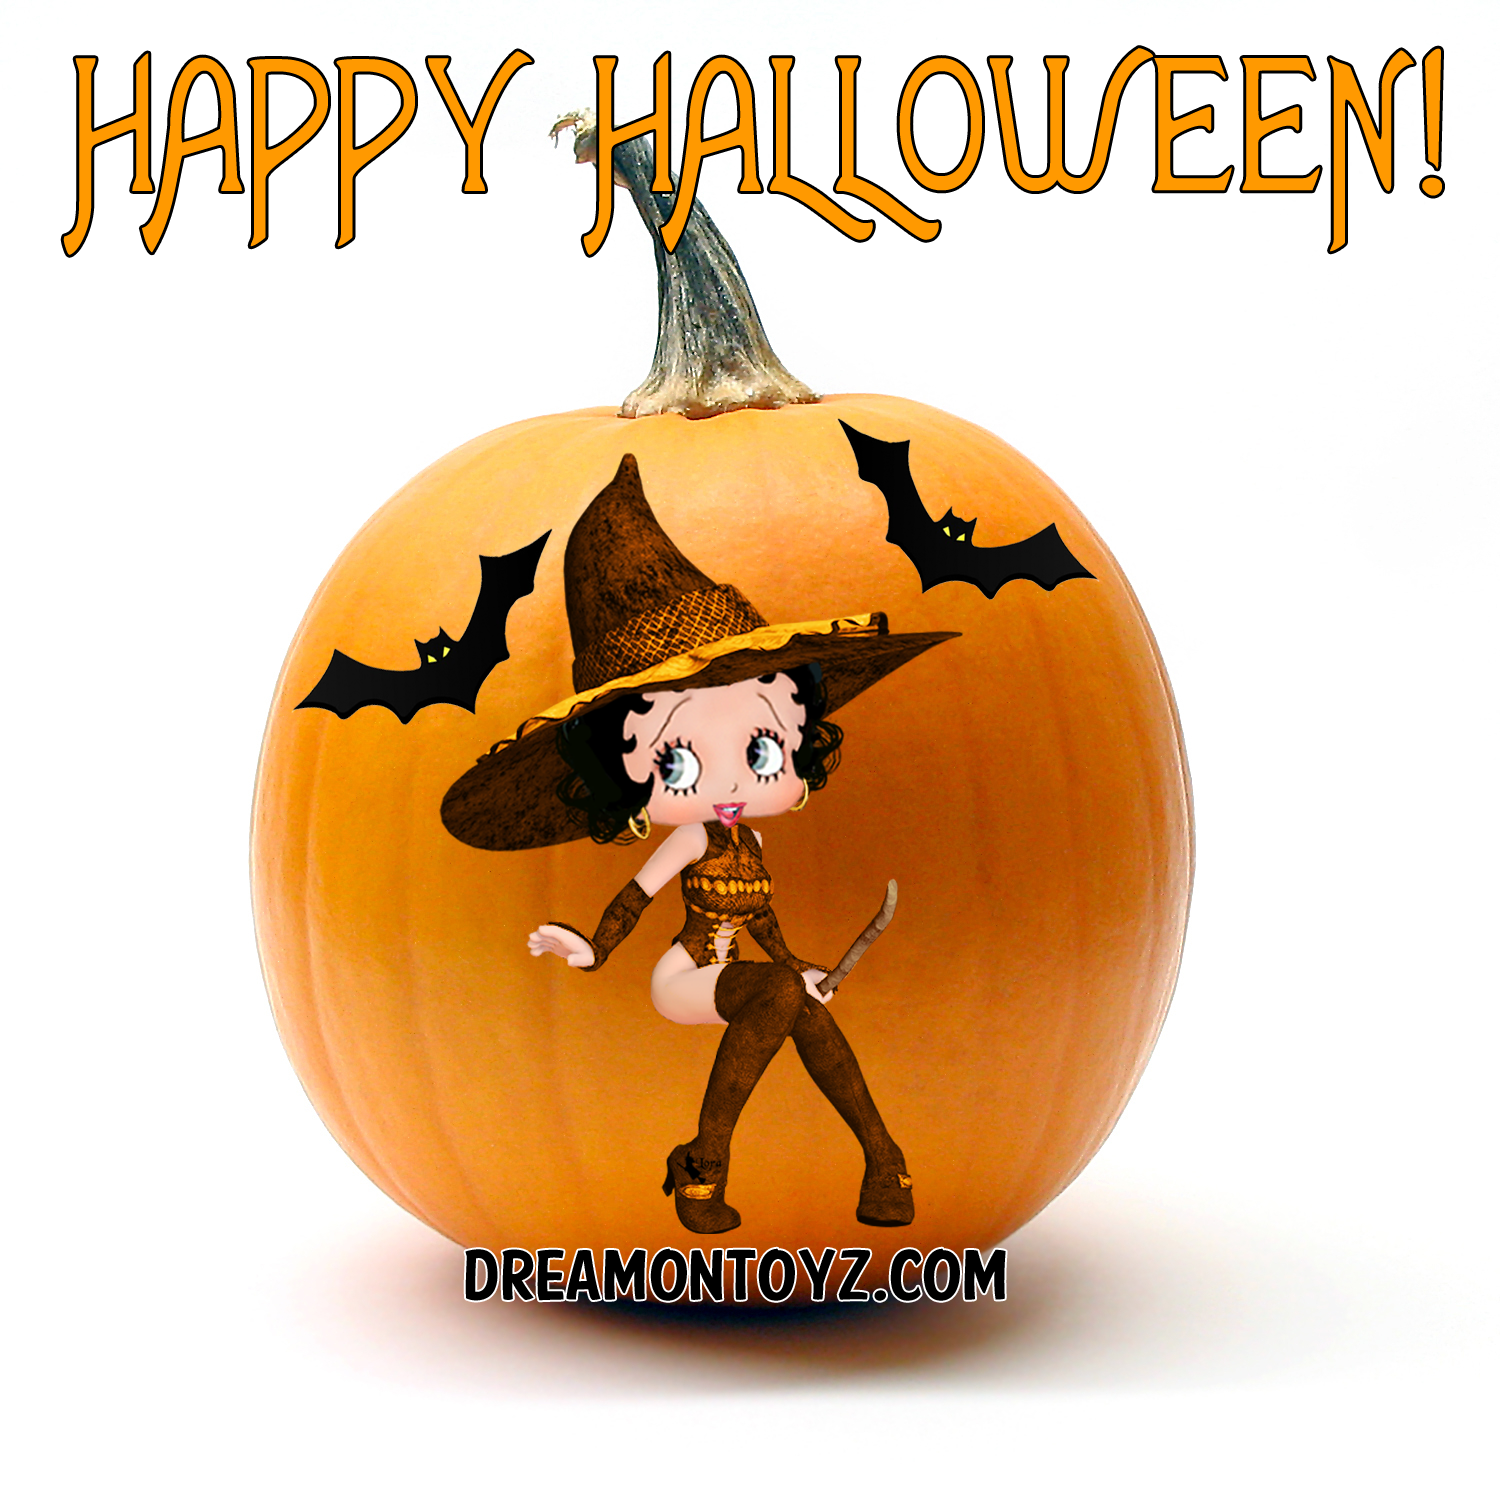 Betty Boop Pictures Archive - BBPA: Betty Boop Halloween ...